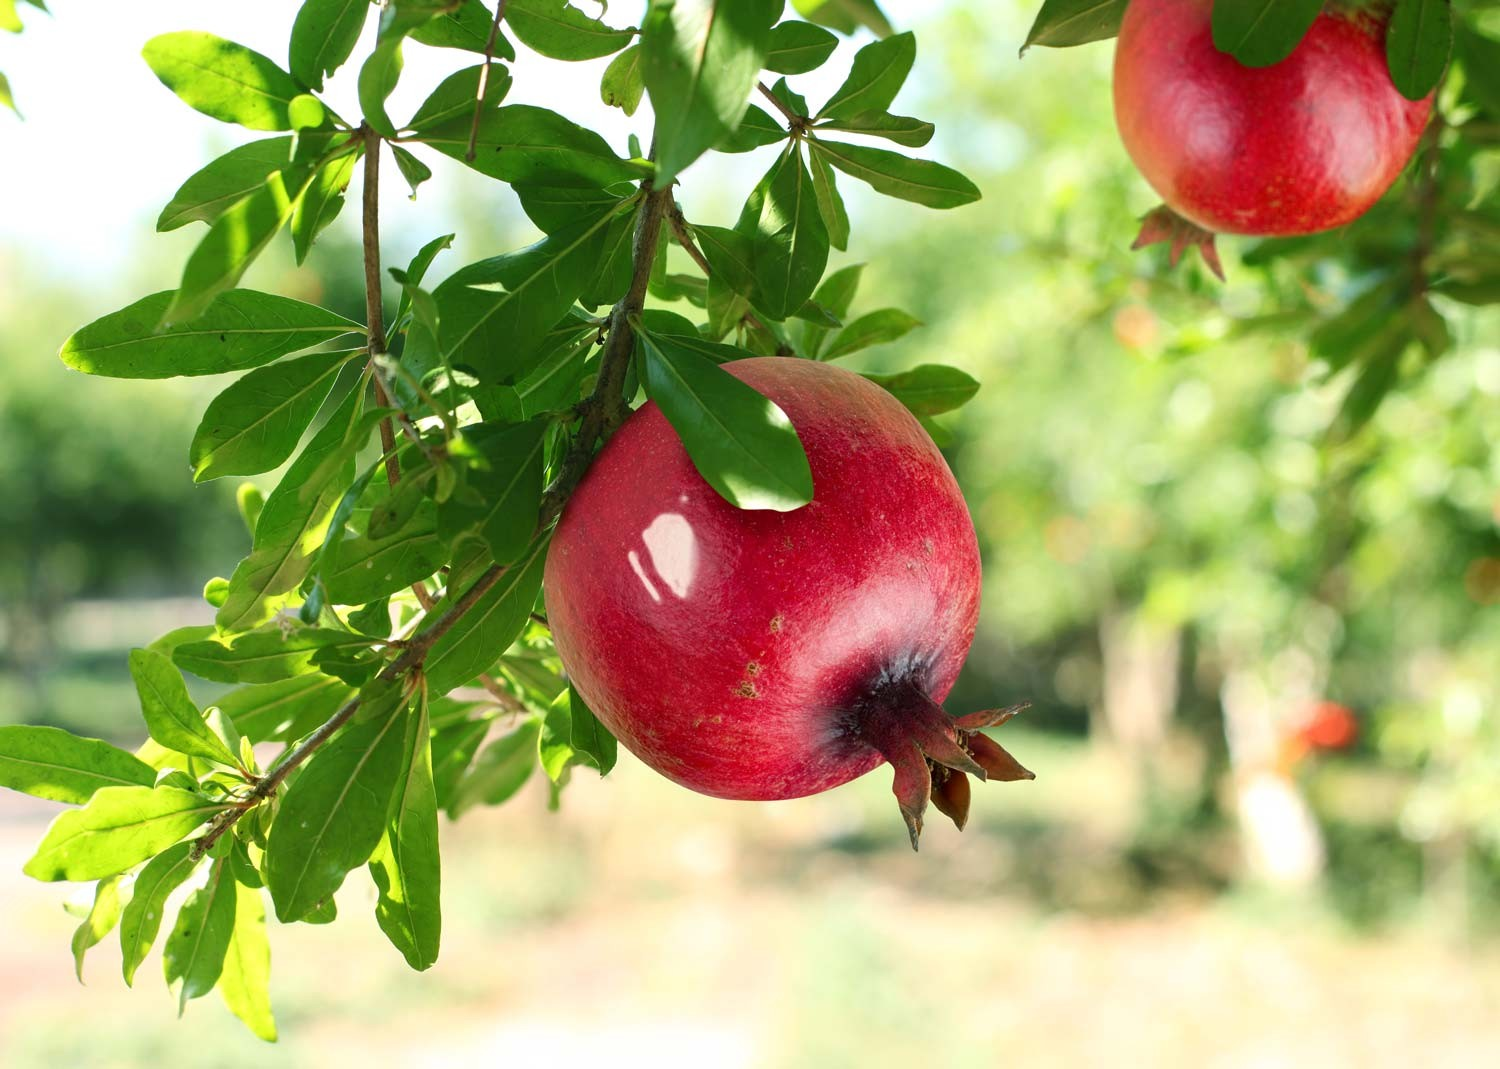 In Japan, the pomegranate plant is often used for bonsai.